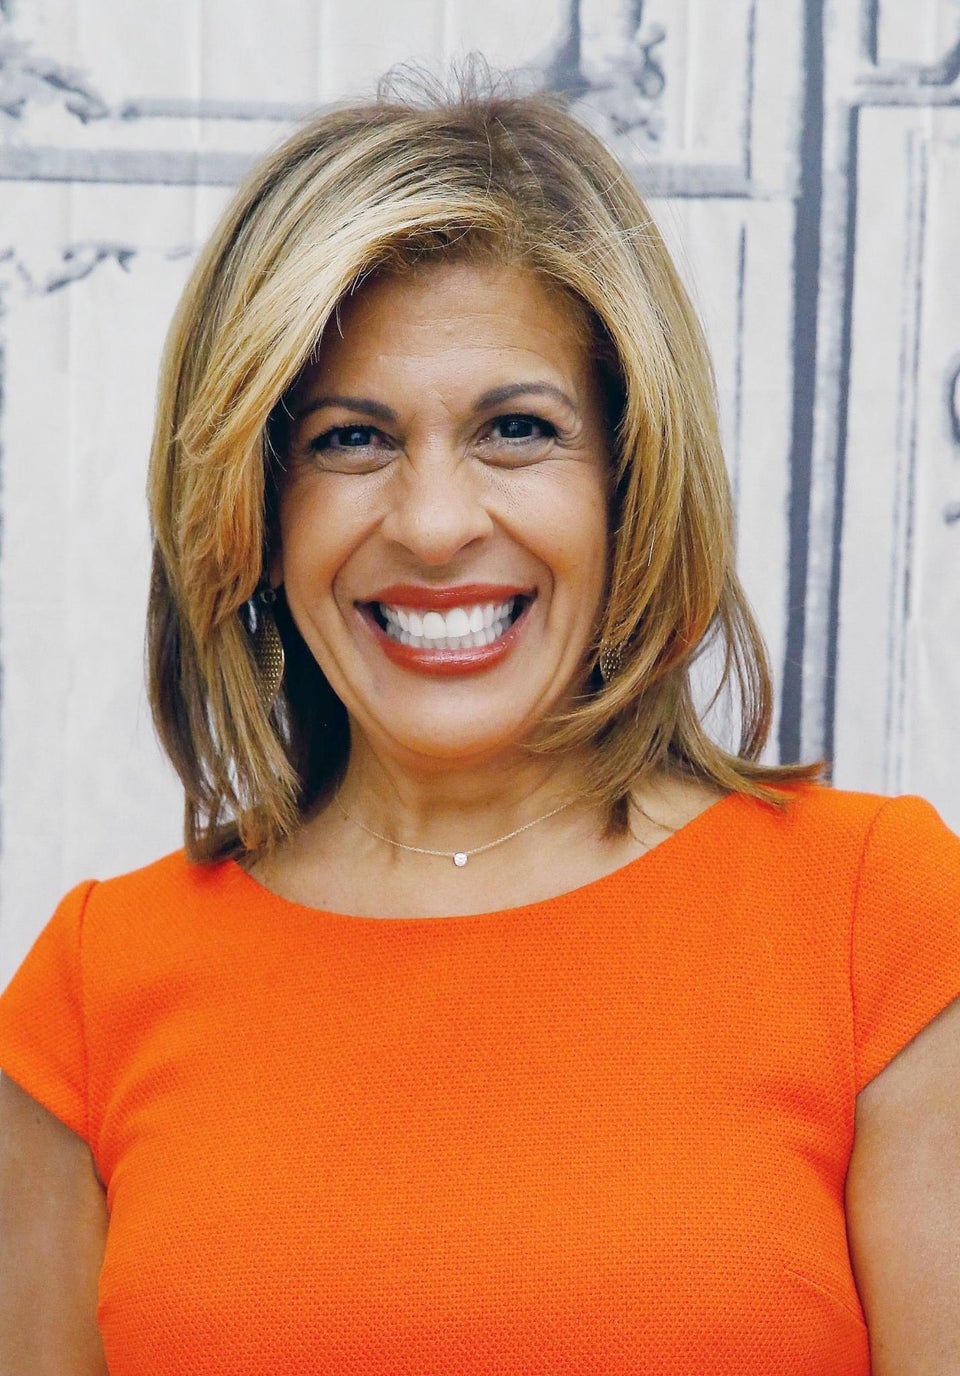 Hoda Kotb Opens Up About Emotional Adoption at 52 After Cancer Left Her Unable to Conceive